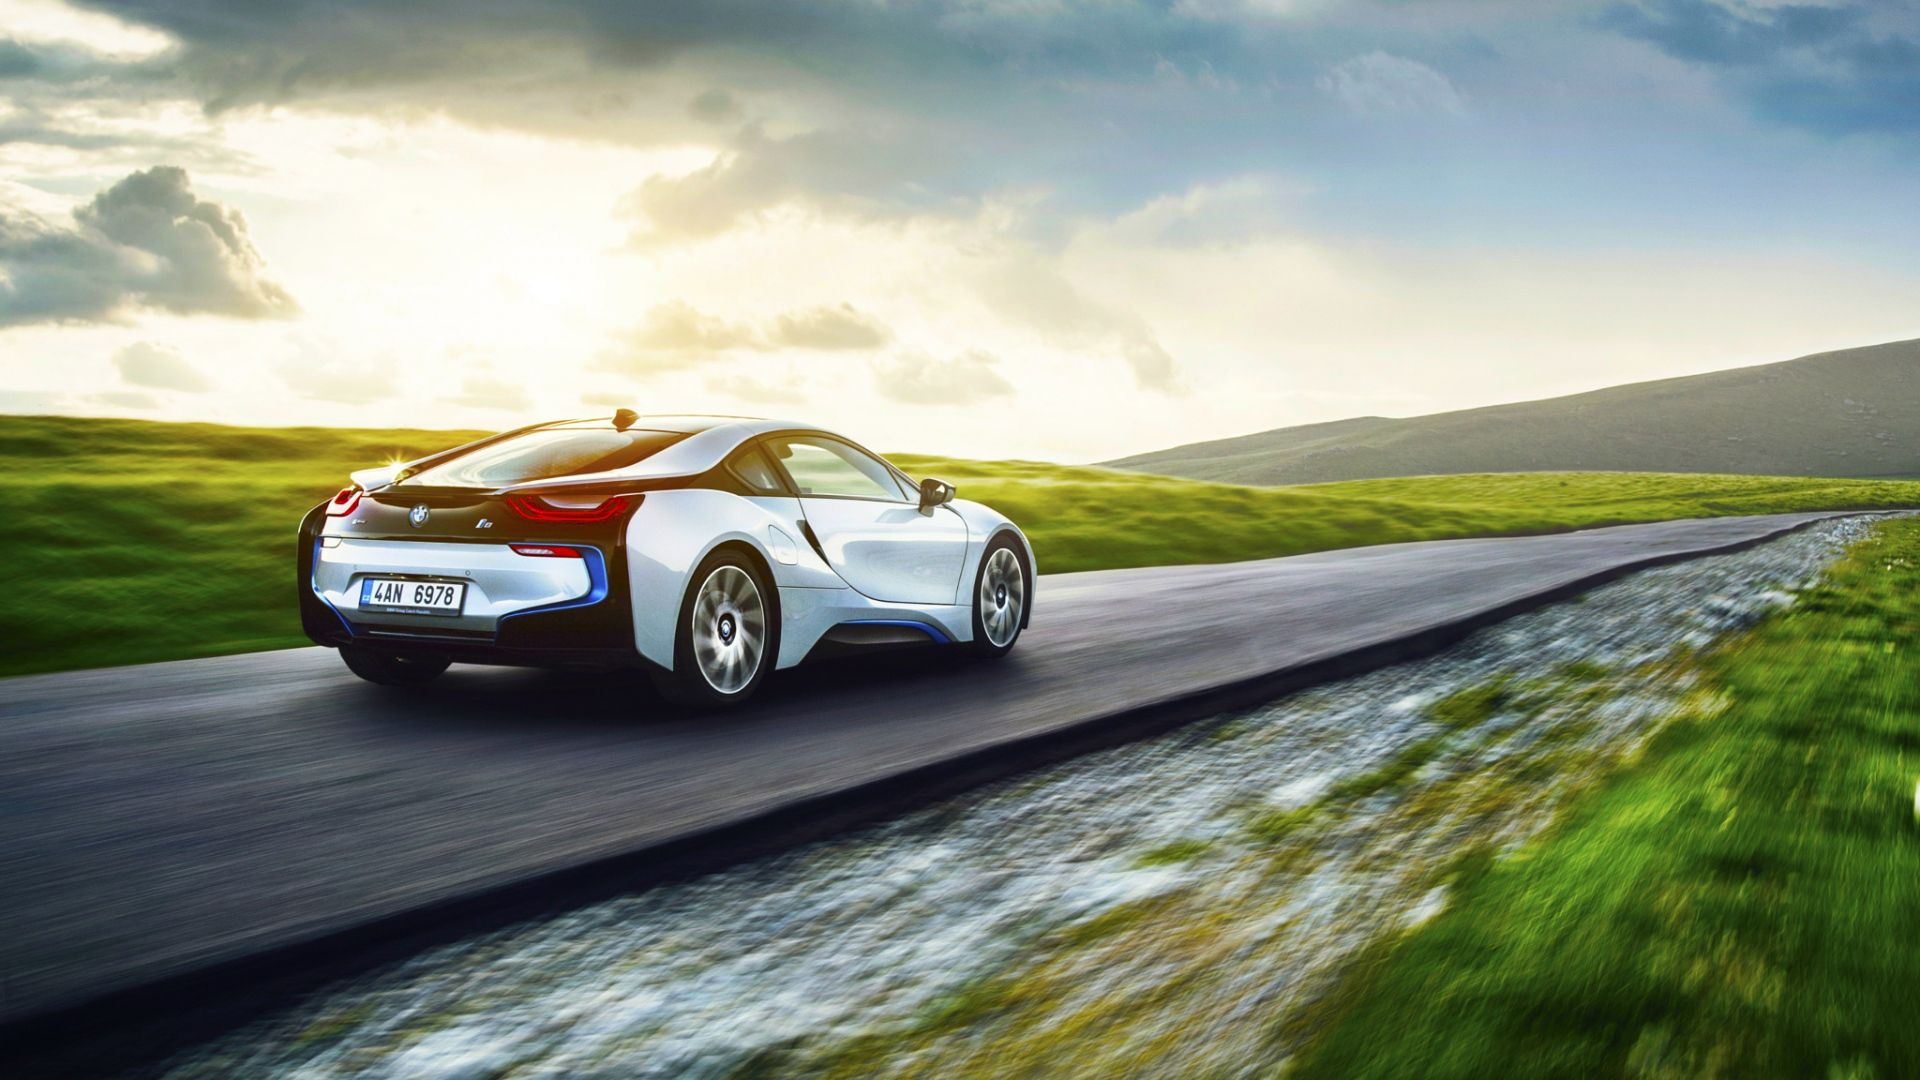 Bmw I8 Bmw Wallpapers Futuristic Car Wallpapers And